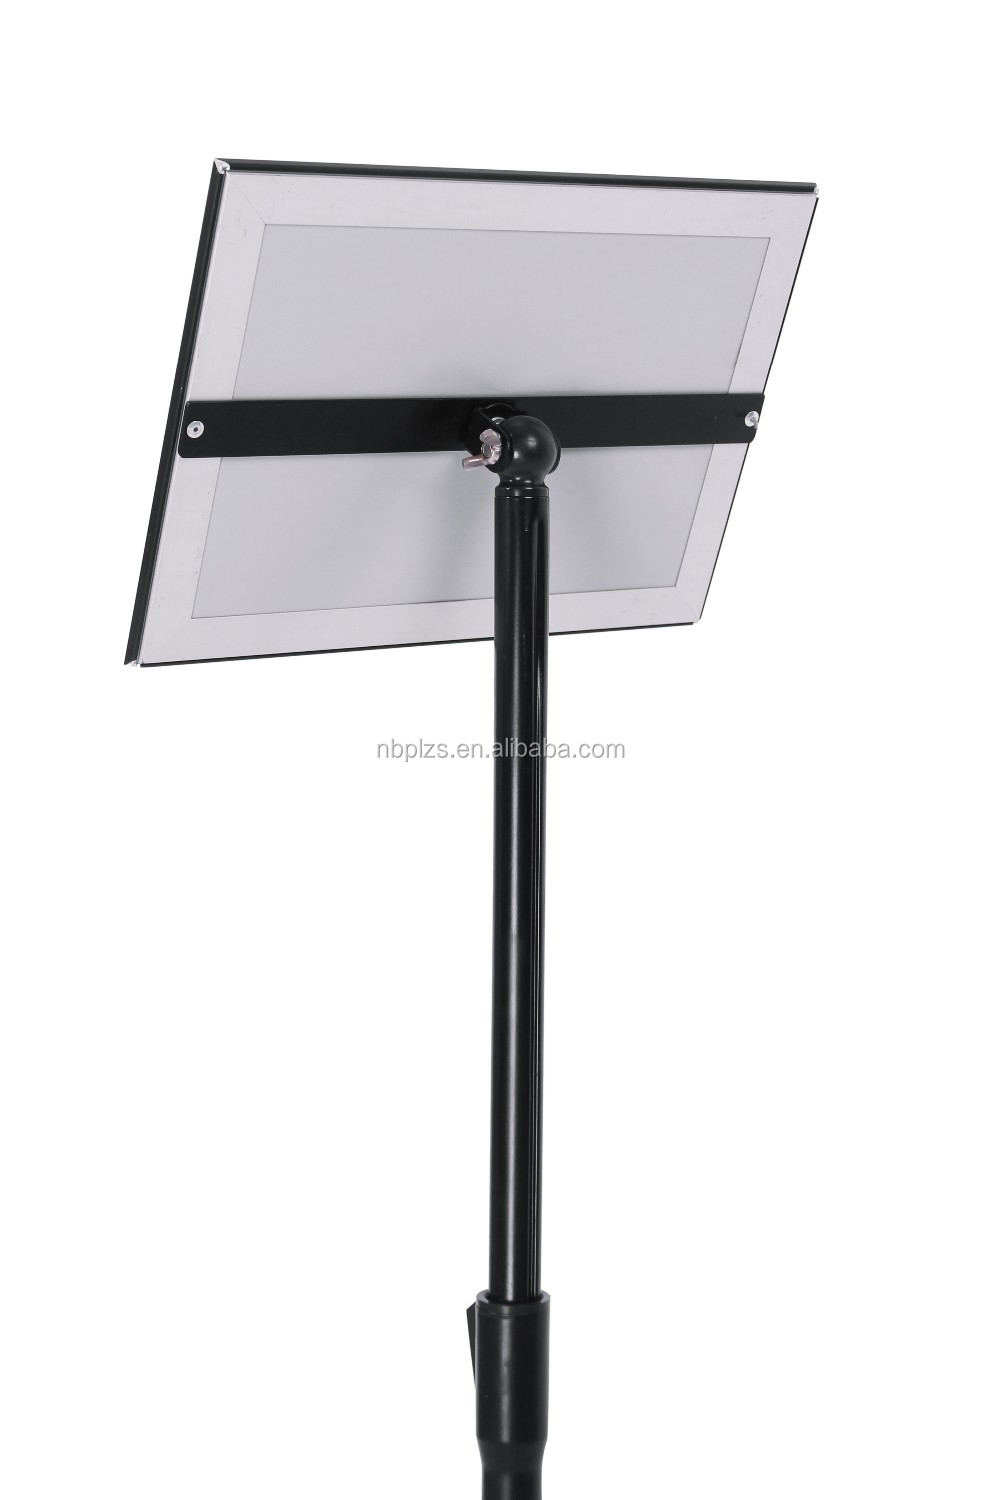 metal poster display menu display holder ipad floor stand - Ipad Floor Stand